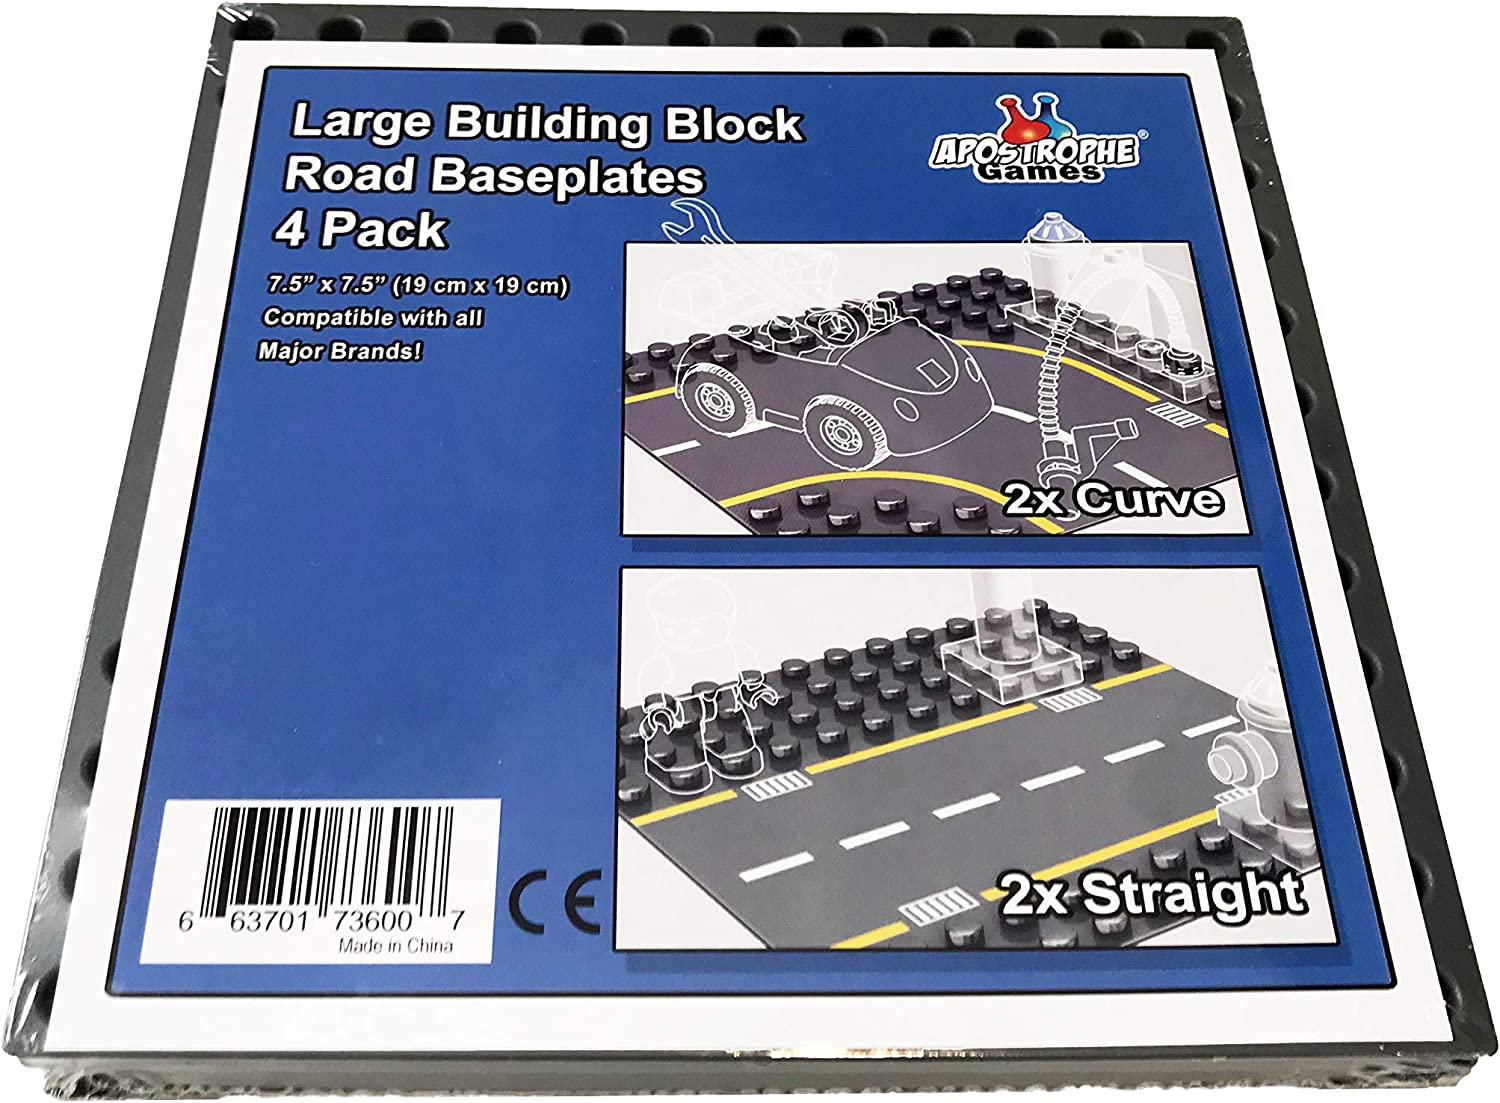 Apostrophe Games Large Building Block Base Plates Compatible with All Major Brands 4 Pack Green, Light Green, Sand, Blue